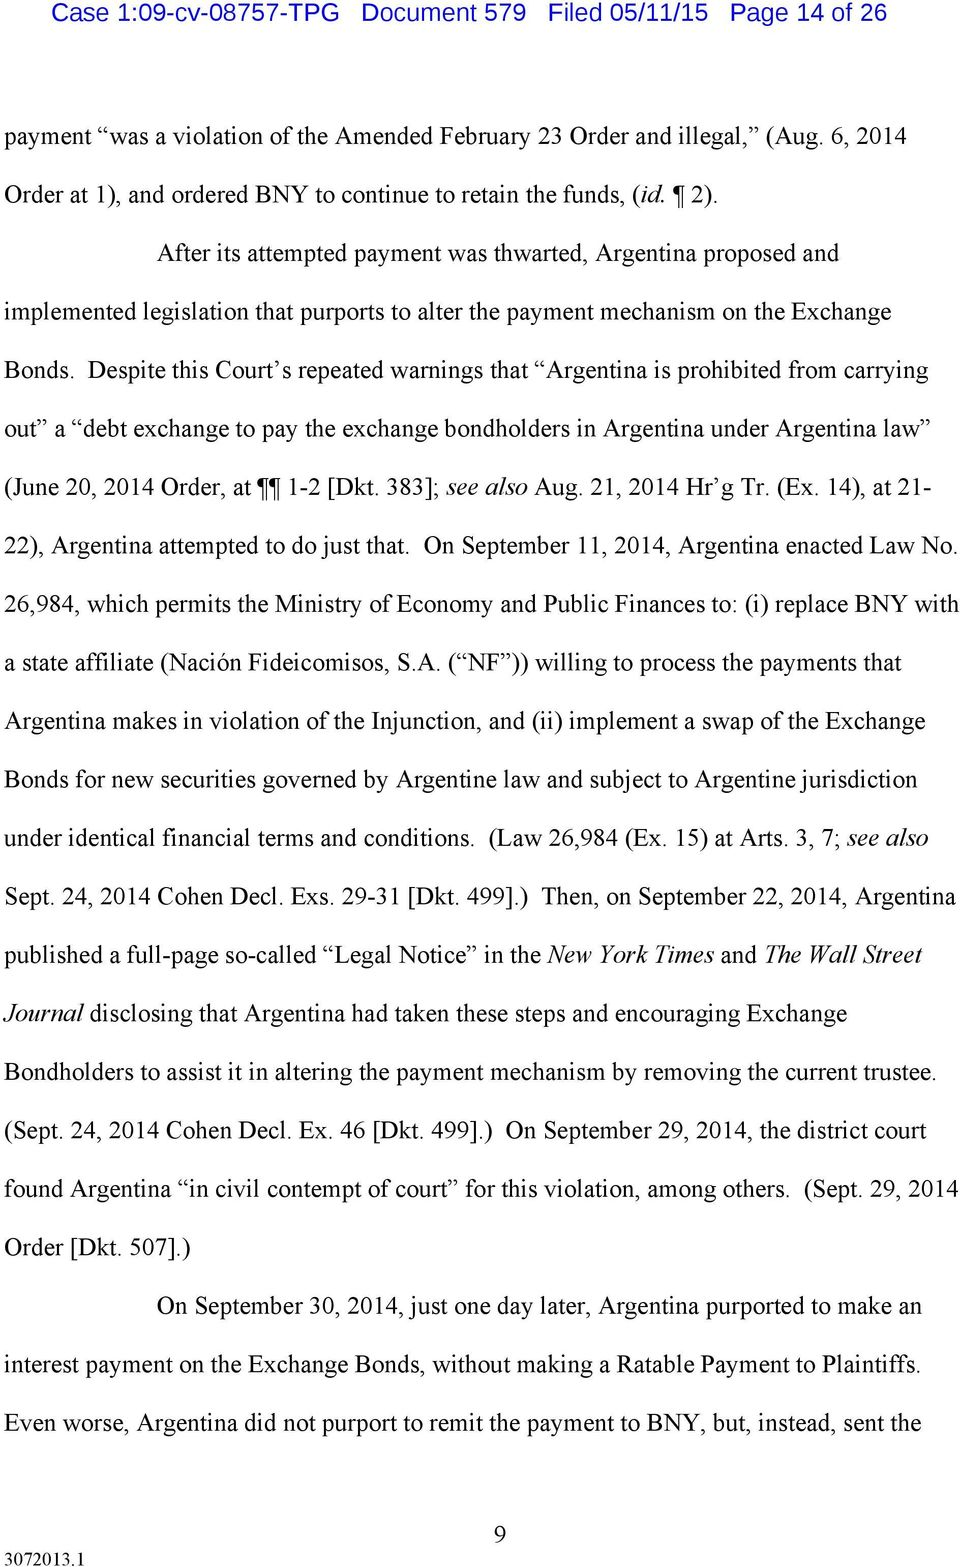 After its attempted payment was thwarted, Argentina proposed and implemented legislation that purports to alter the payment mechanism on the Exchange Bonds.